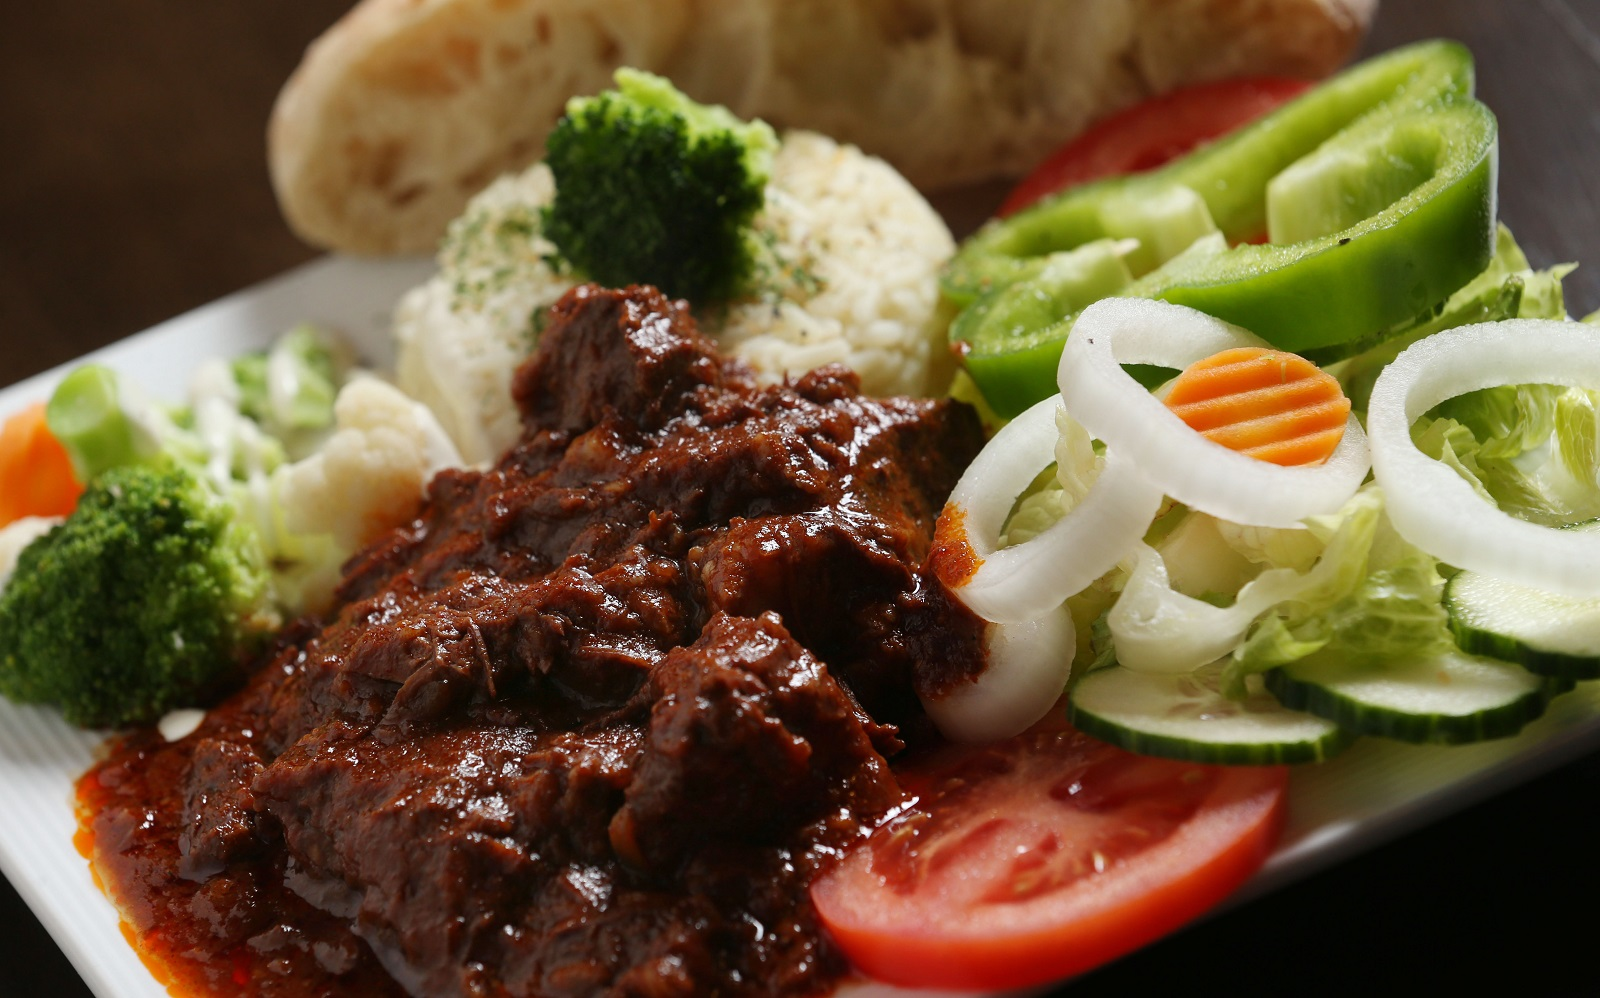 Balkan Dining's goulash is beef tenderloin slowly stewed and served over rice or mashed potatoes. (Sharon Cantillon/Buffalo News)